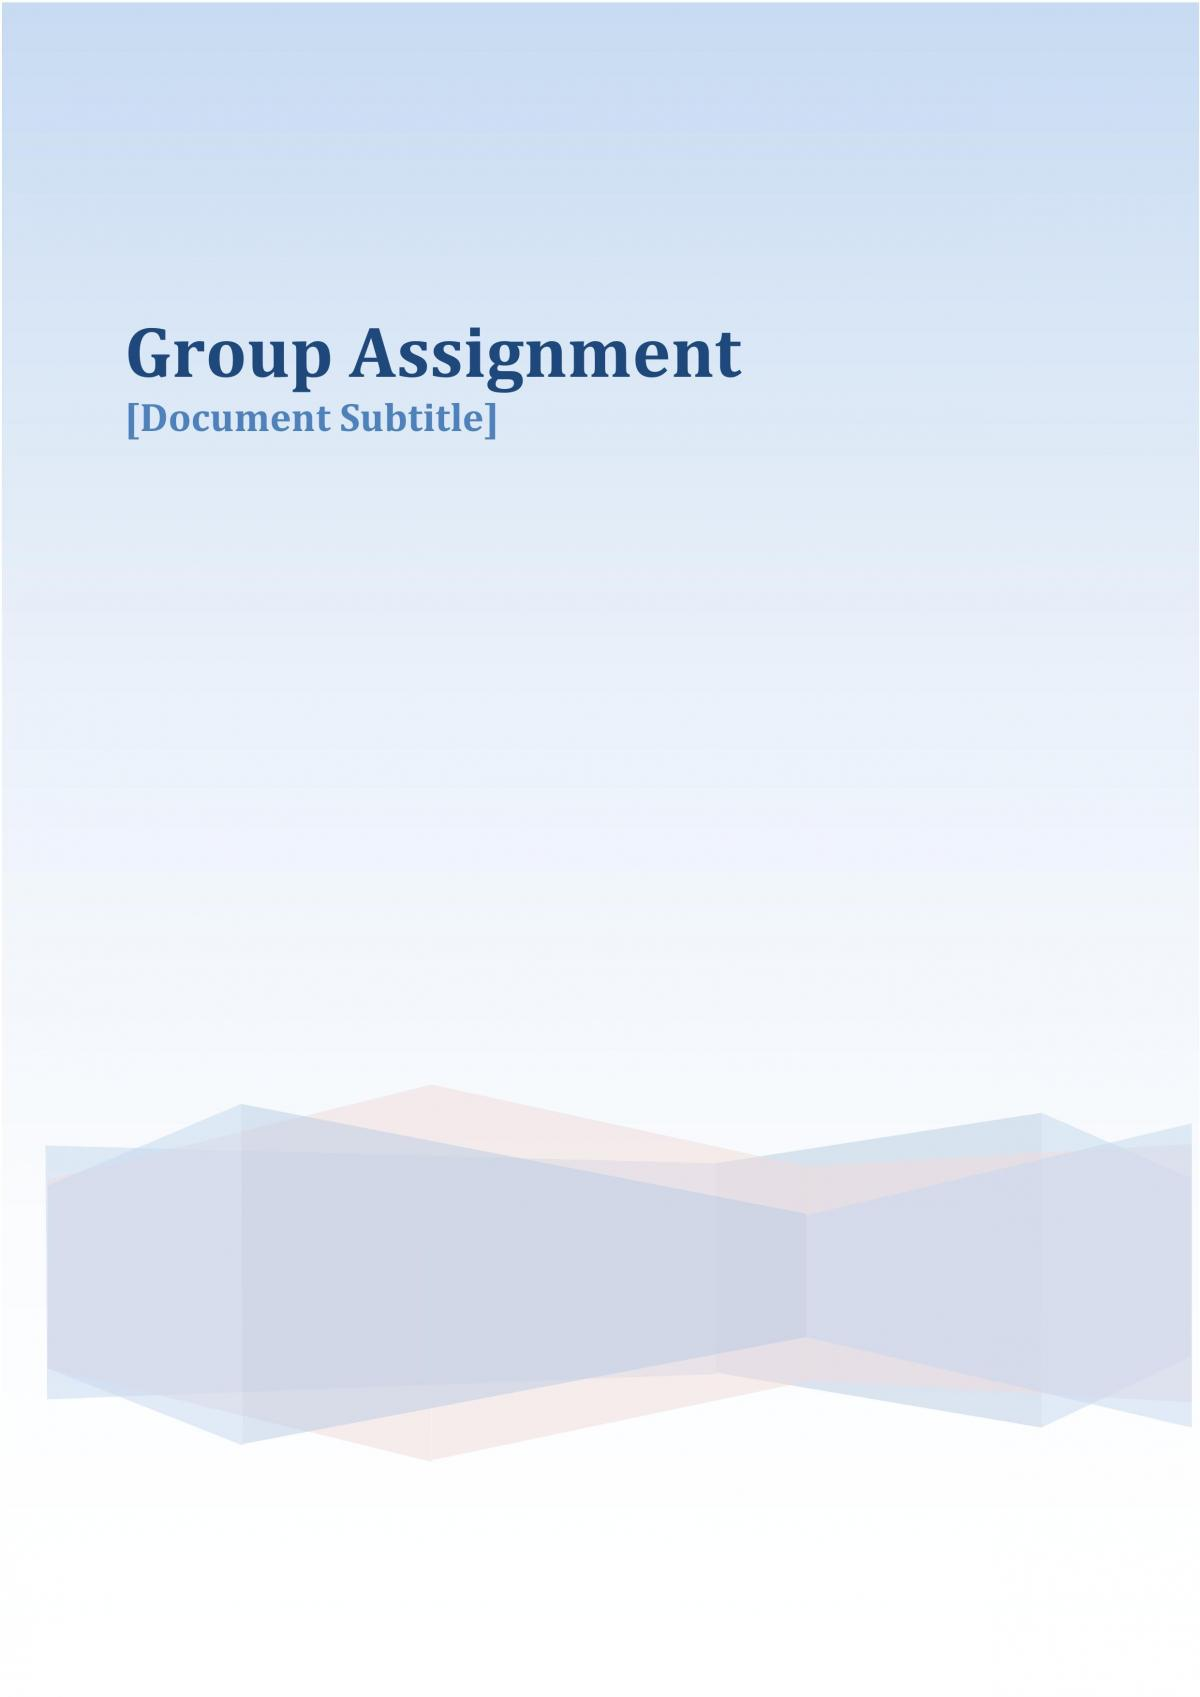 BCF2000 Group Assignment (In Pair) - Page 1